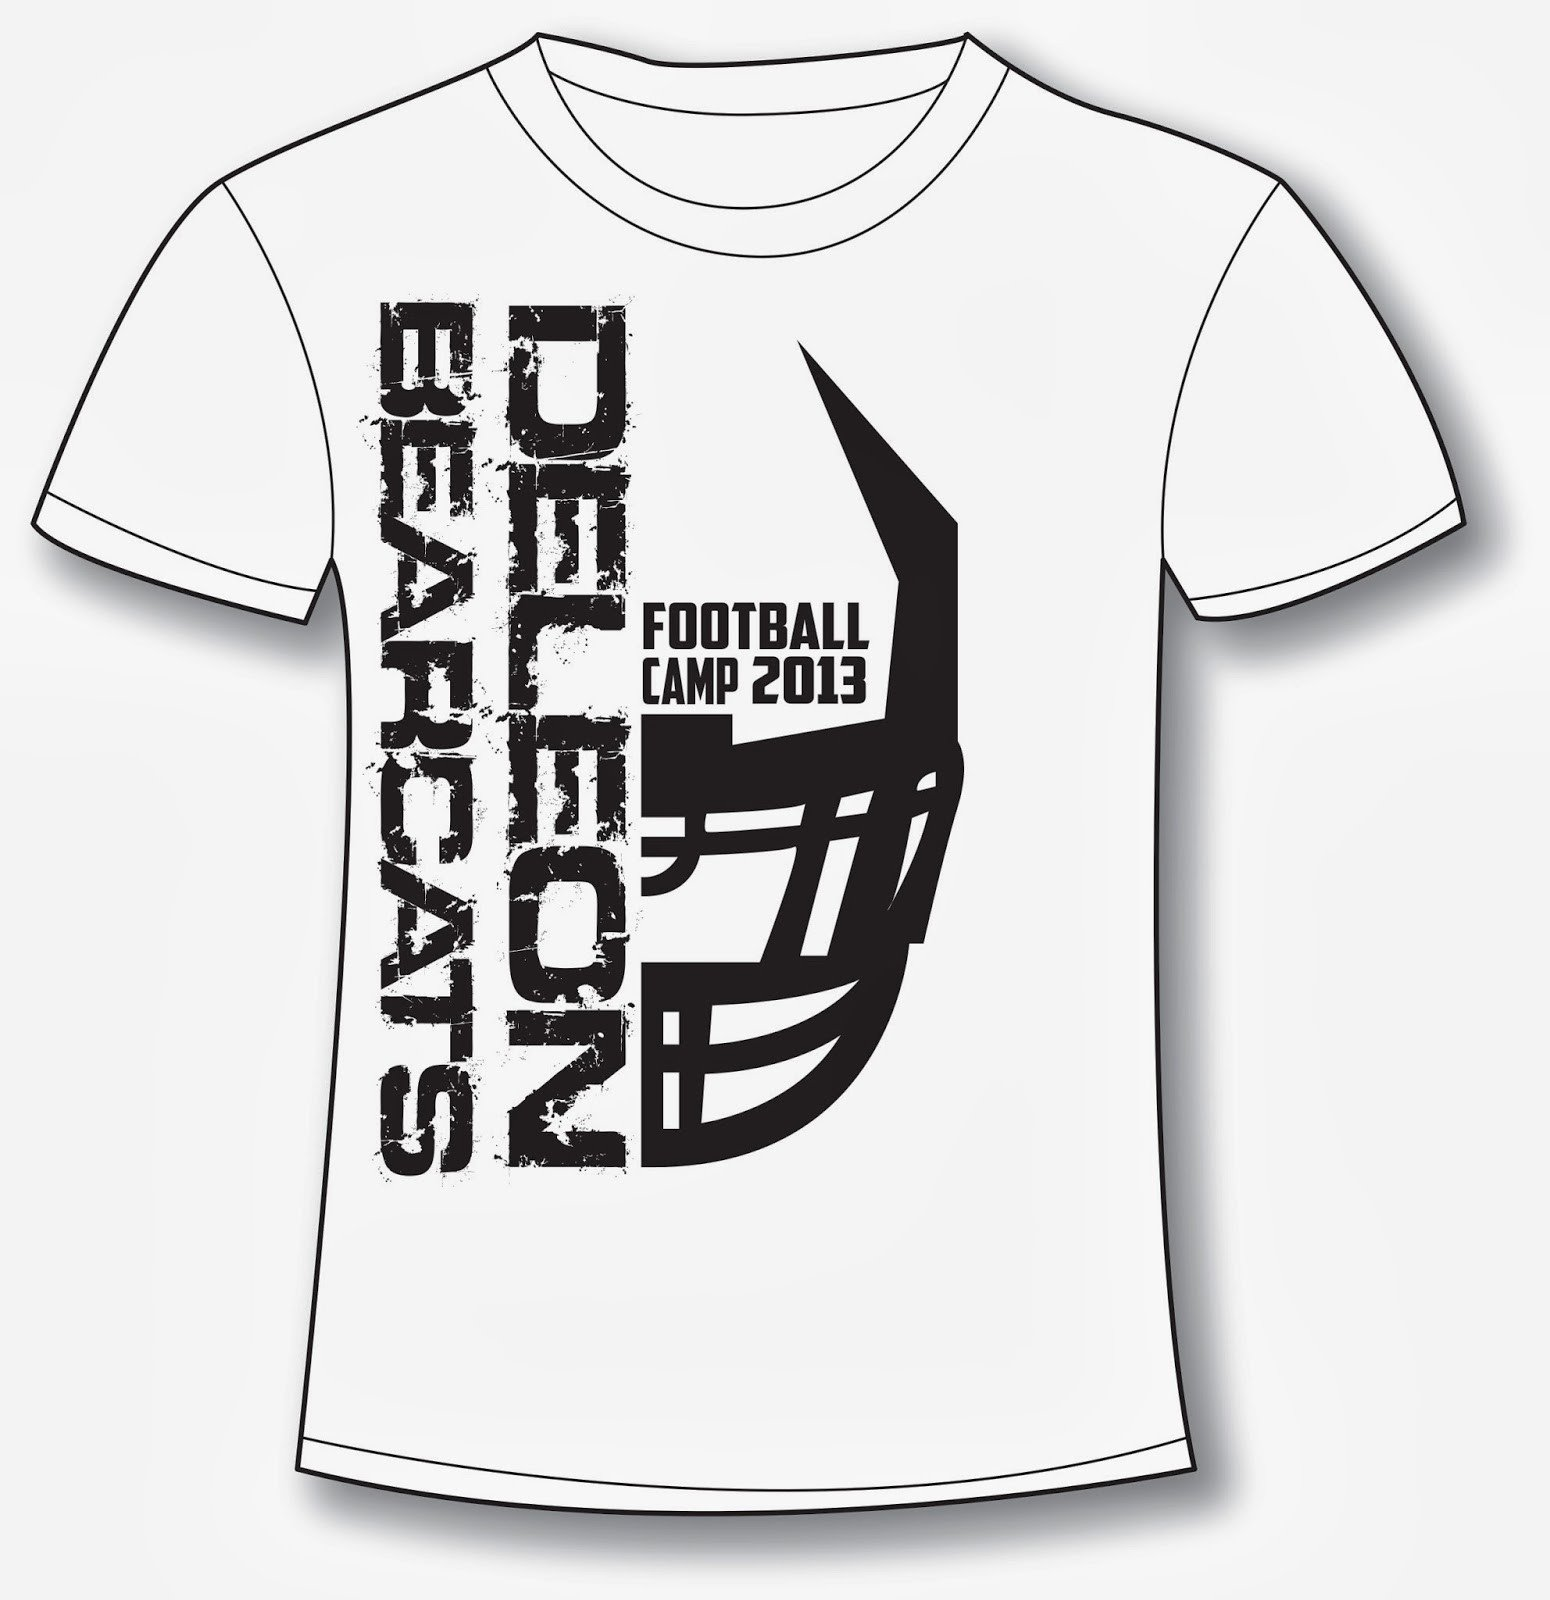 10 Nice Football T Shirt Designs Ideas football t shirt design ideas appealing football logos for t shirts 1